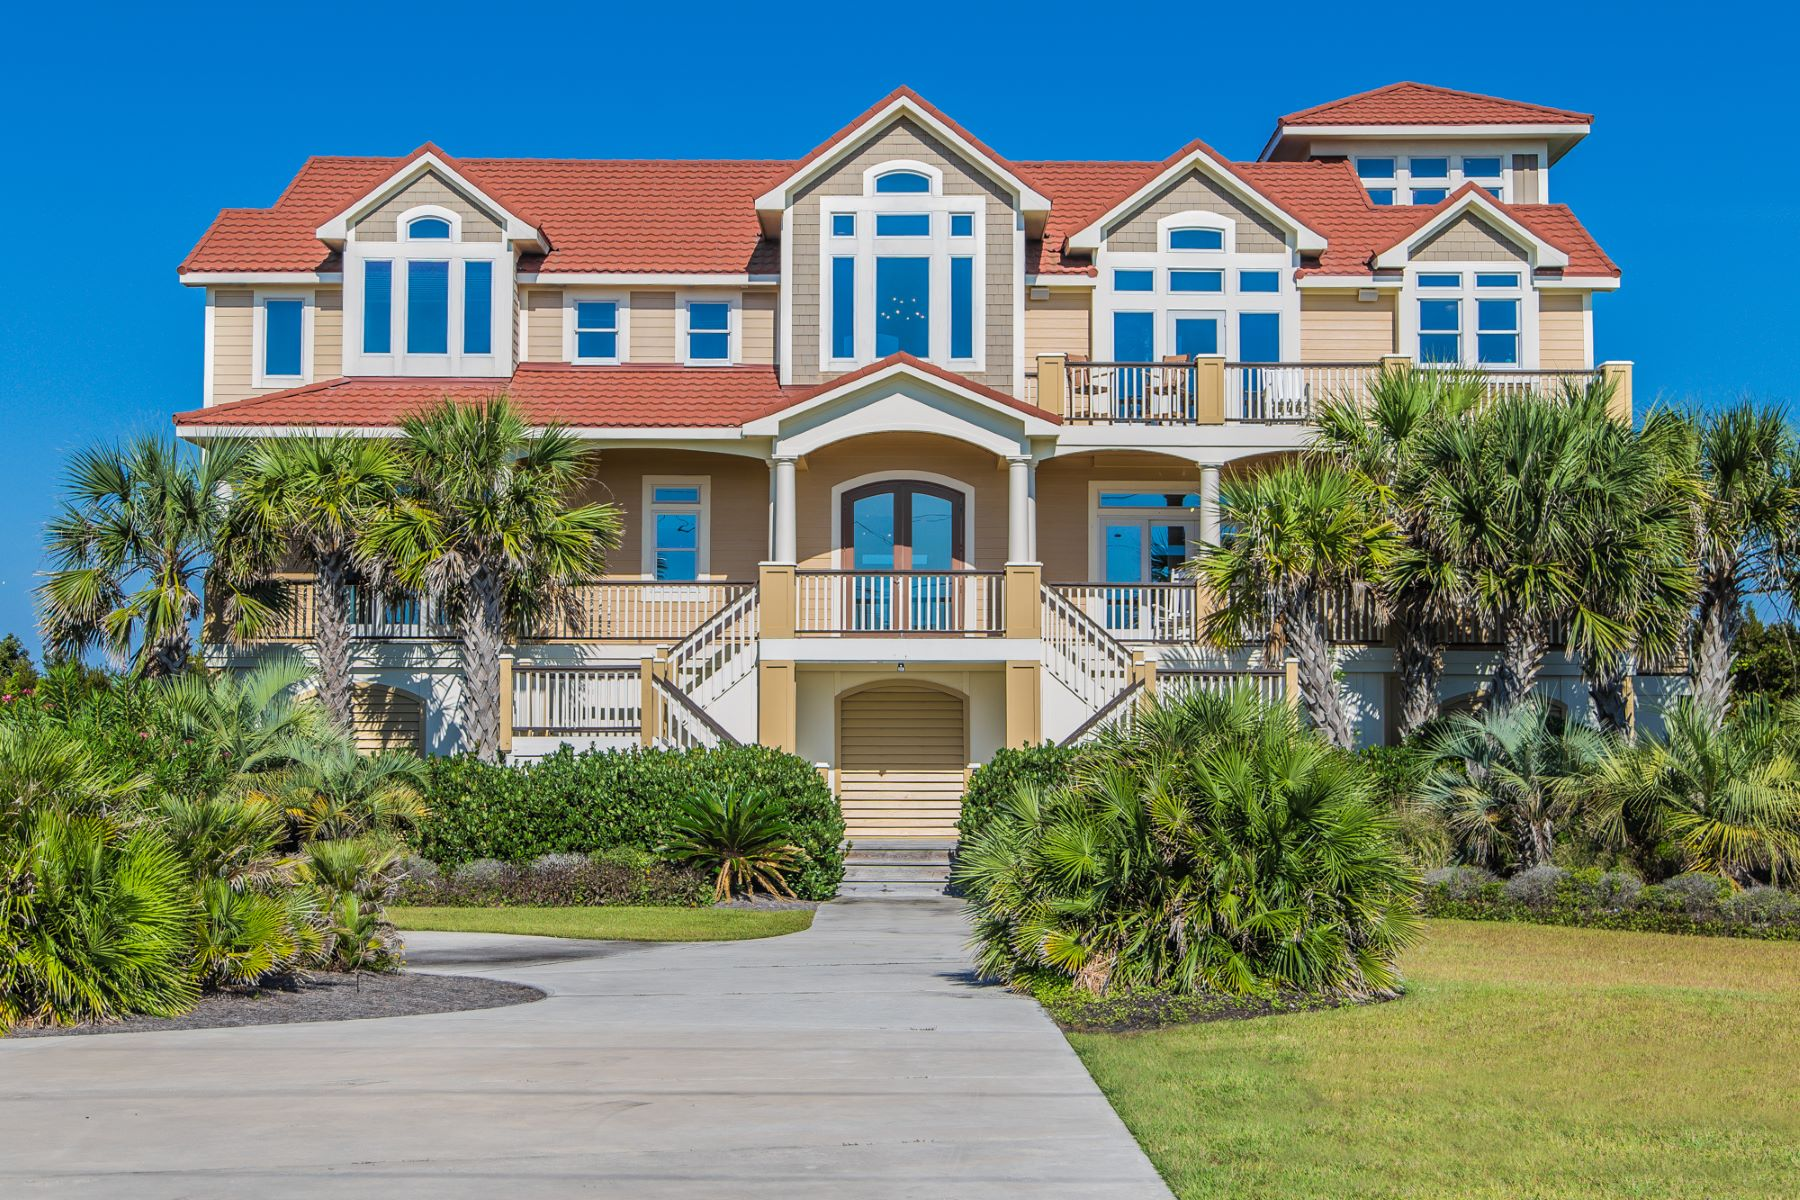 Single Family Home for Sale at Harmonious view of both the ocean and sound in ultimate privacy 557 New River Inlet Road N Topsail Beach, North Carolina, 28460 United States